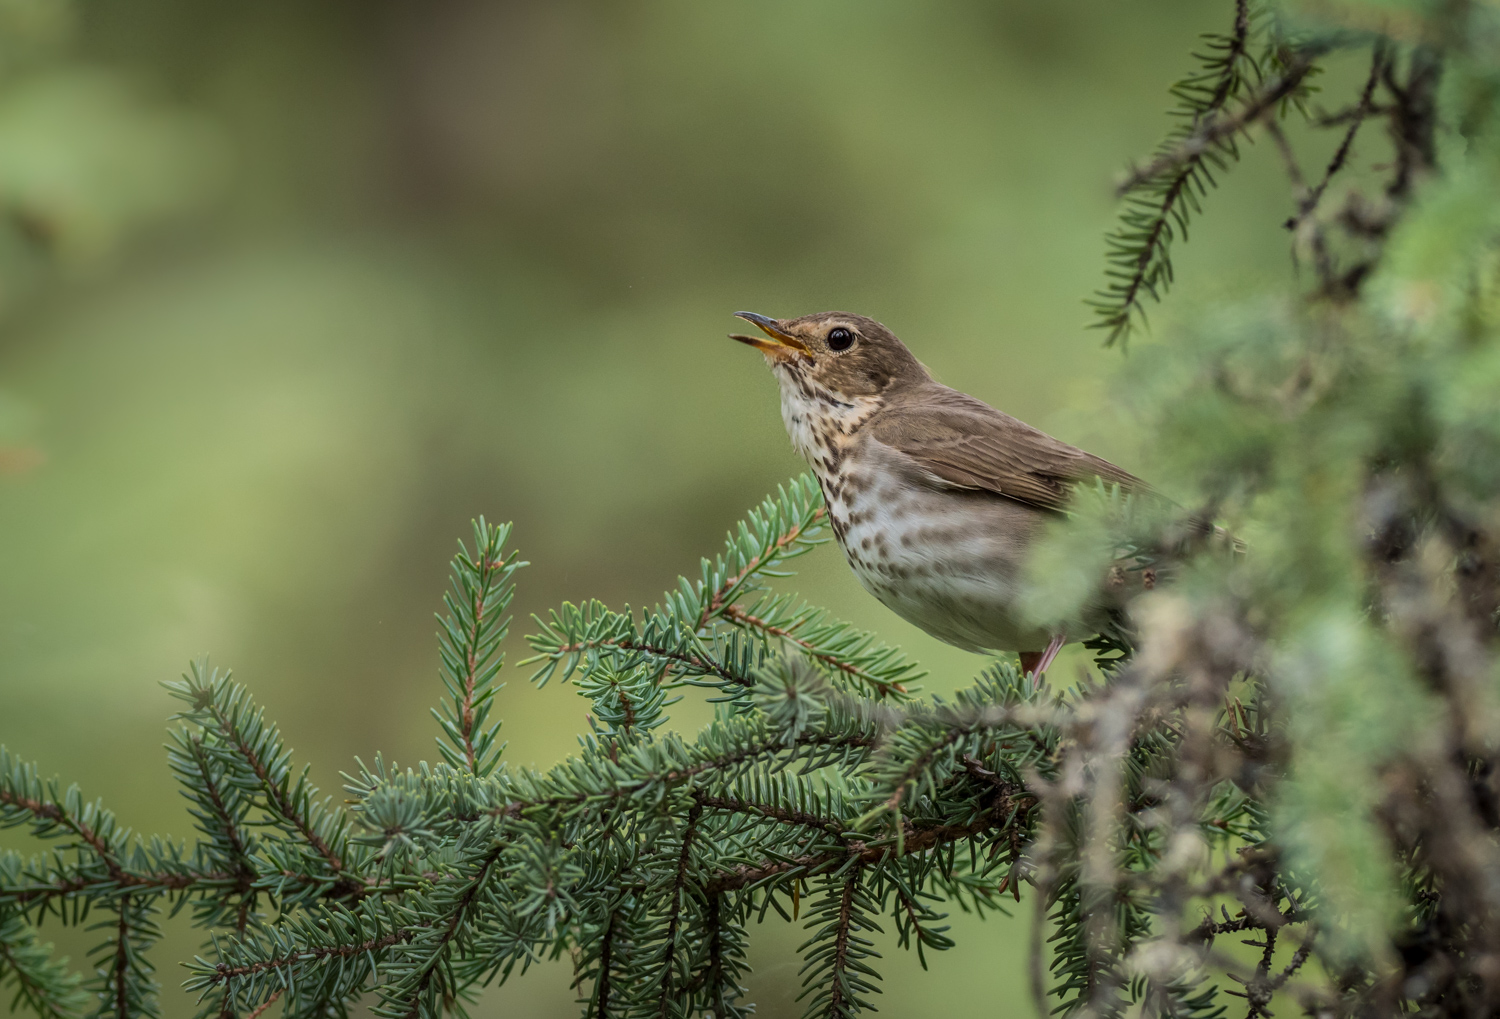 A Guide to Photographing Birds and Wildlife in a Wetland Area - bird in a spruce tree